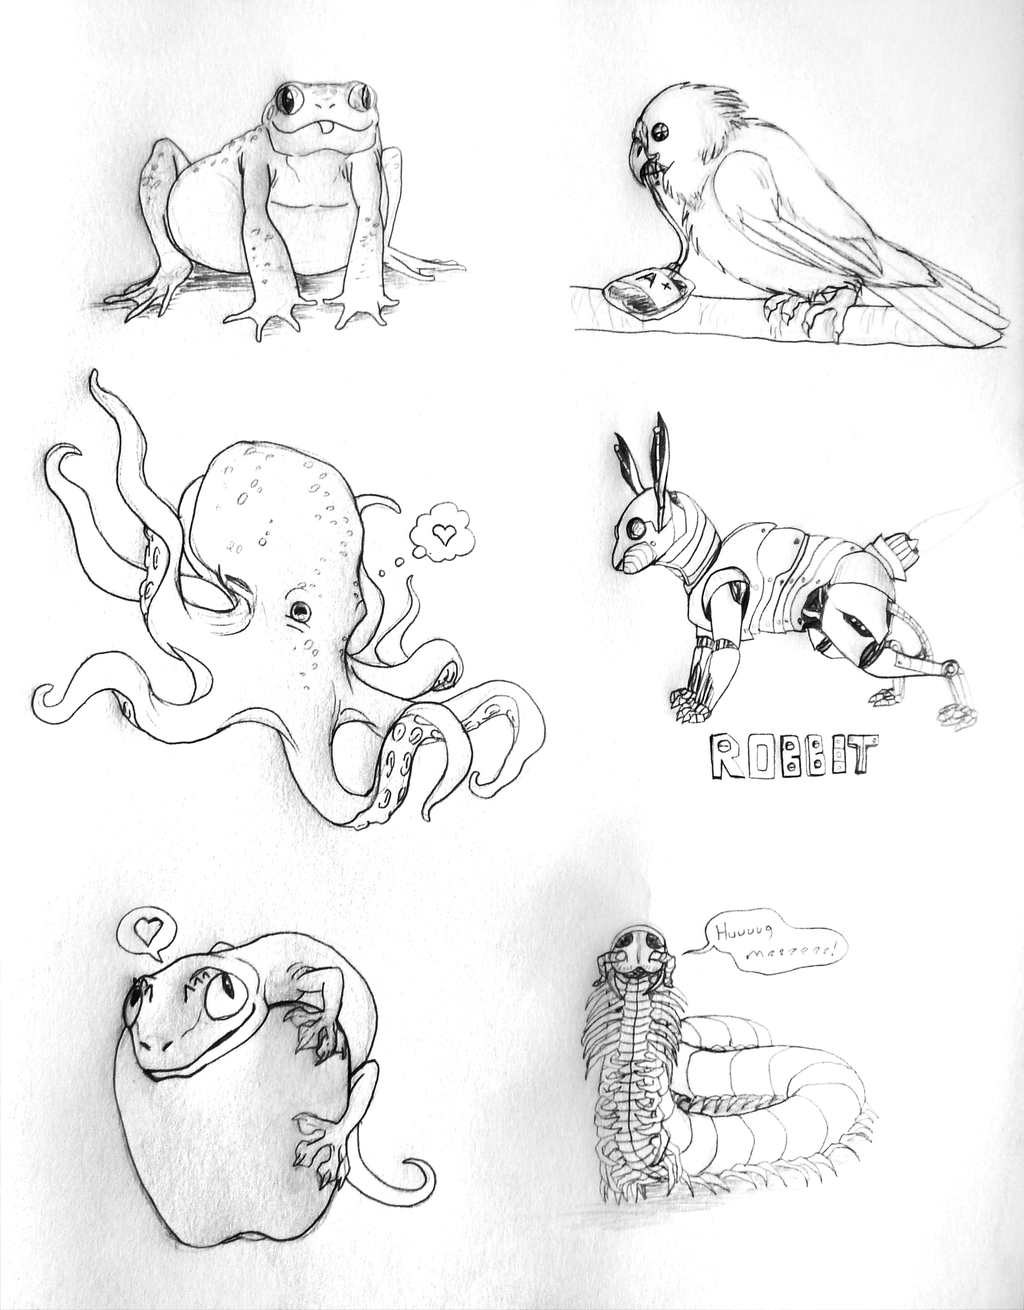 Sketches About 'Cute Things'